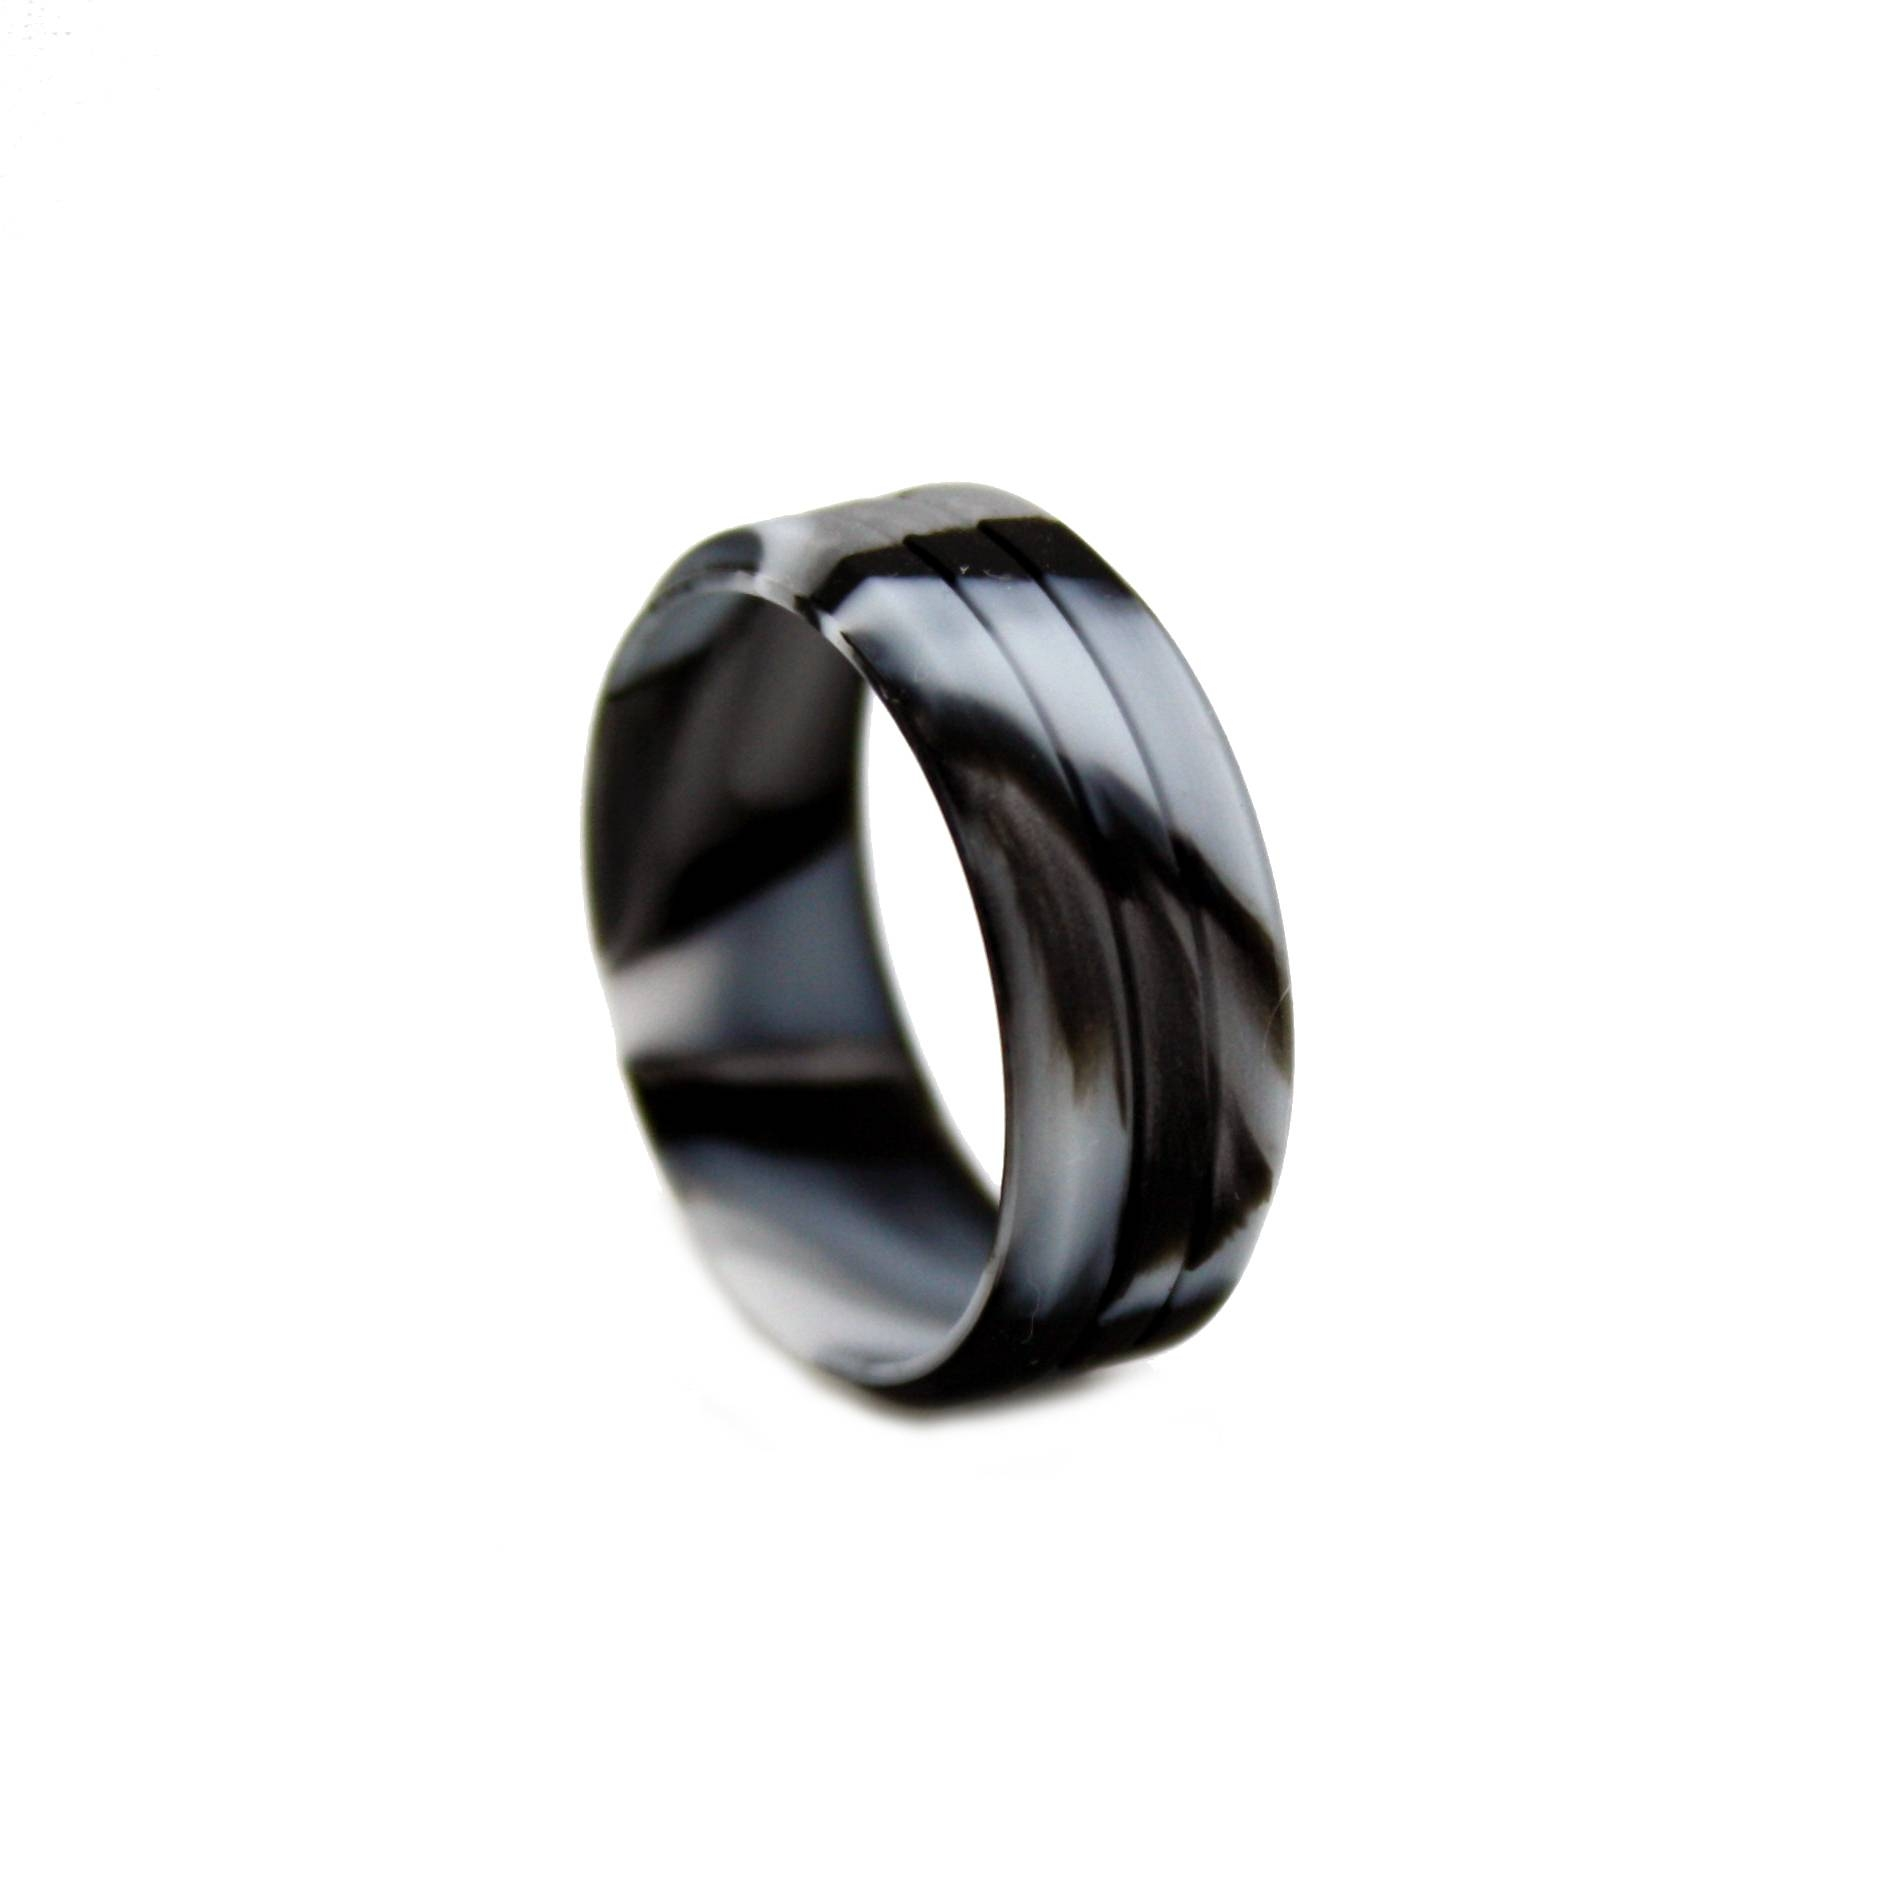 Camo Silicone Ring, Outdoor Wedding Bands, Camo Silicone Wedding Regarding Silicone Wedding Bands (Gallery 1 of 15)